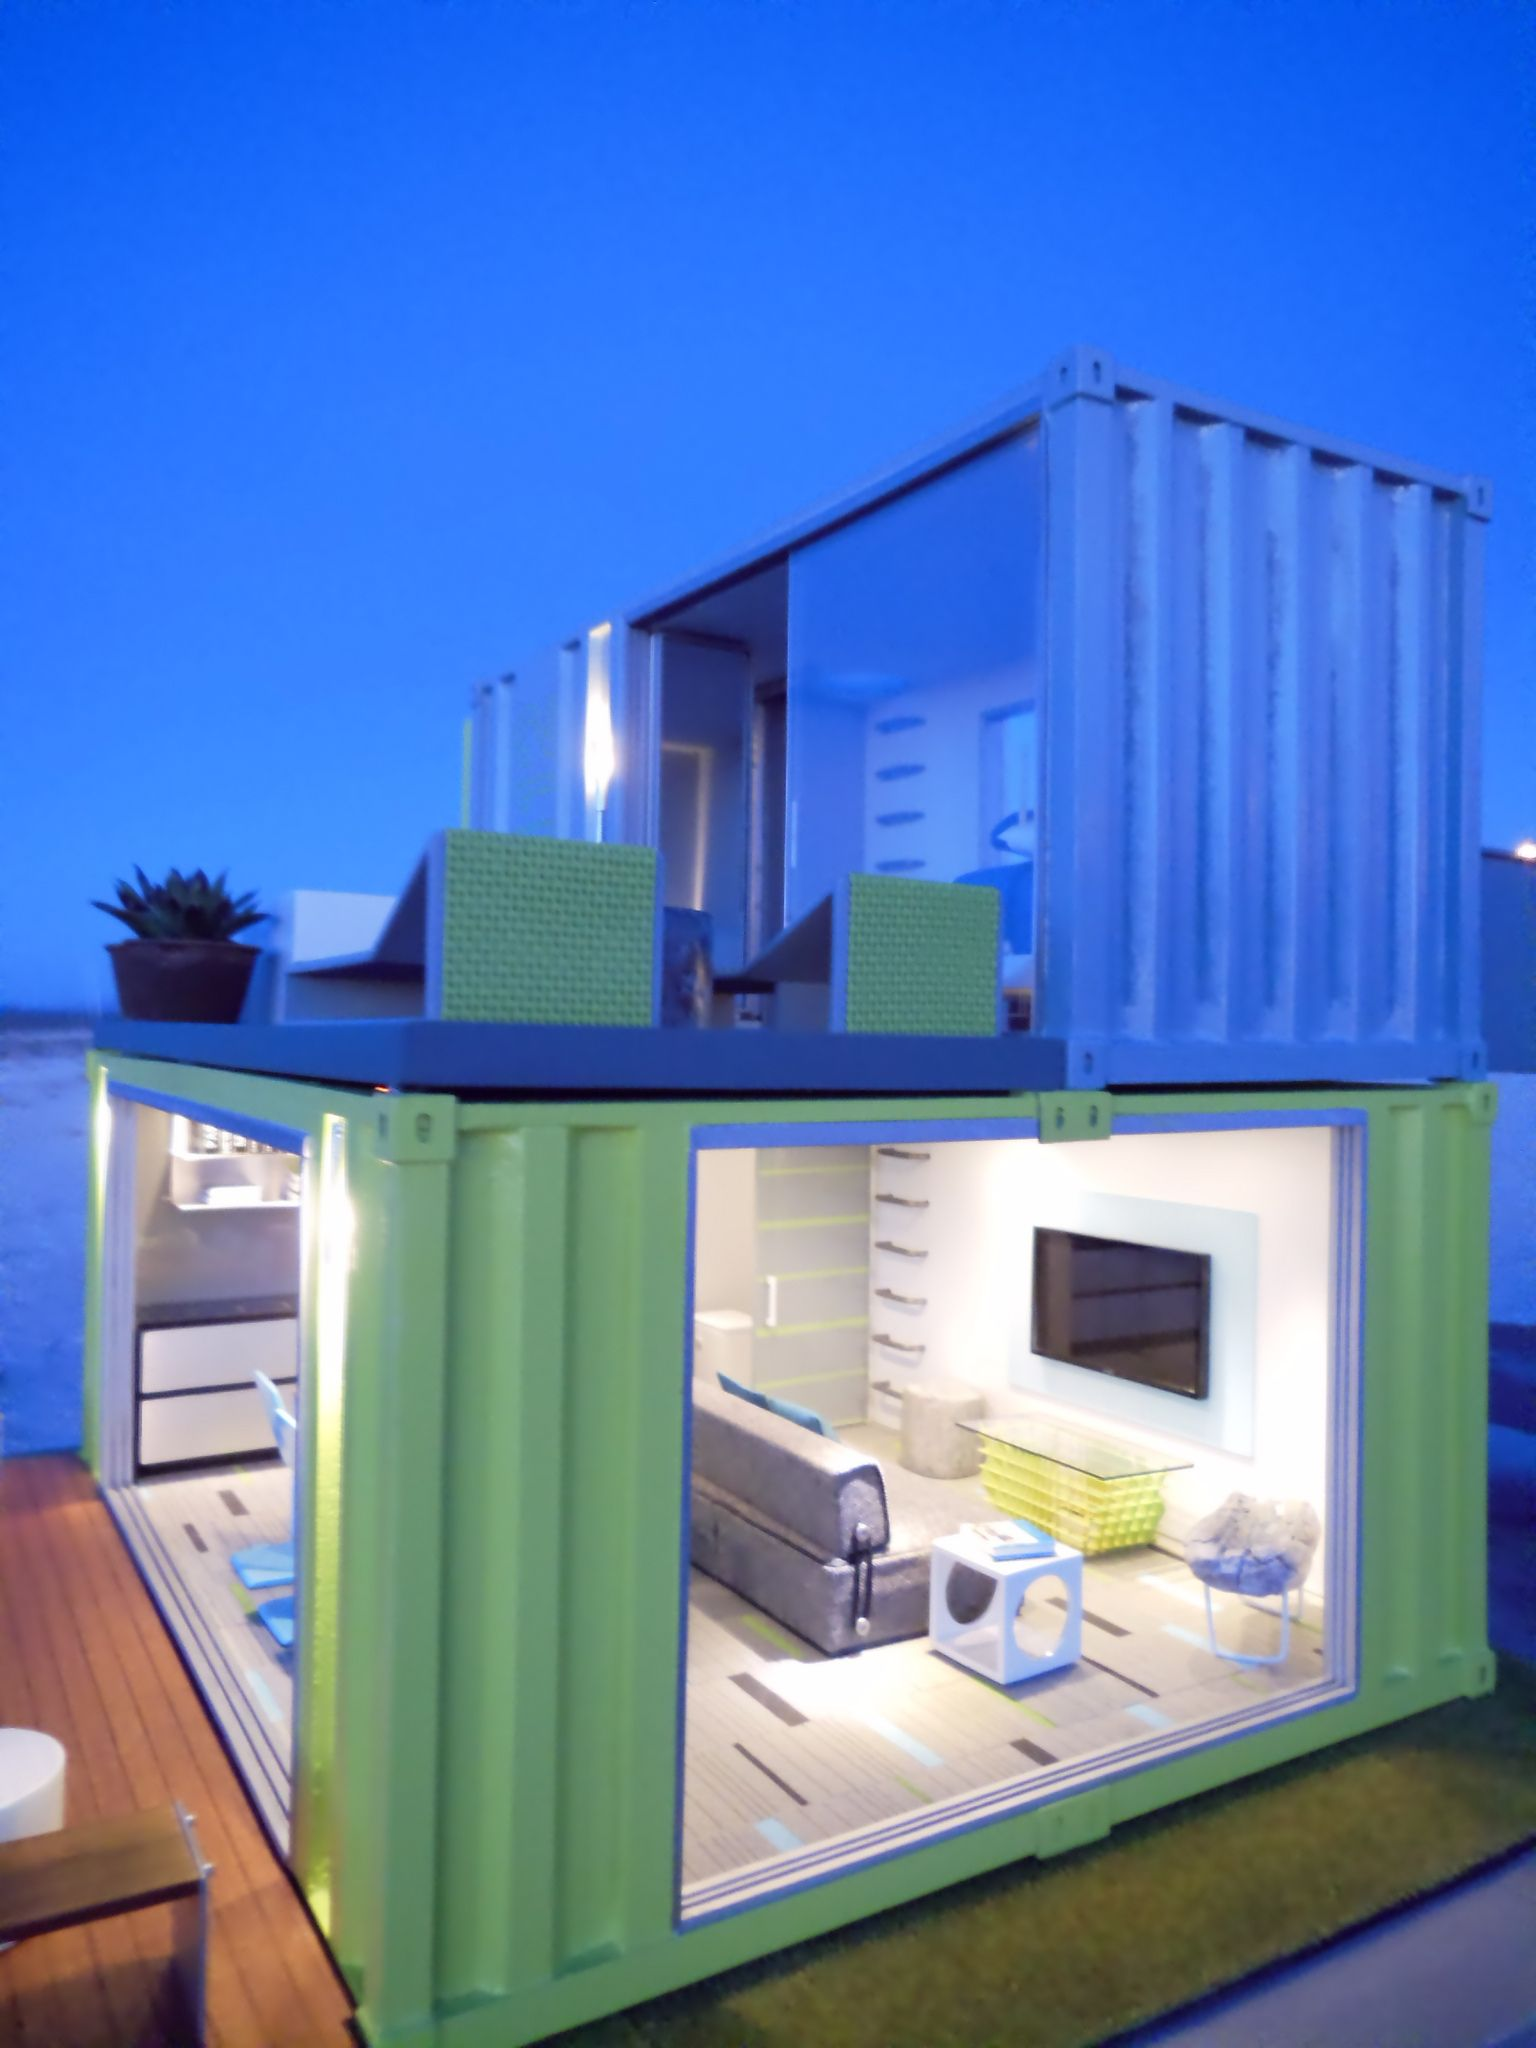 Shipping Container Homes  How to build a shipping container home including plans cool Cutting Openings in Sides Can Be Done With